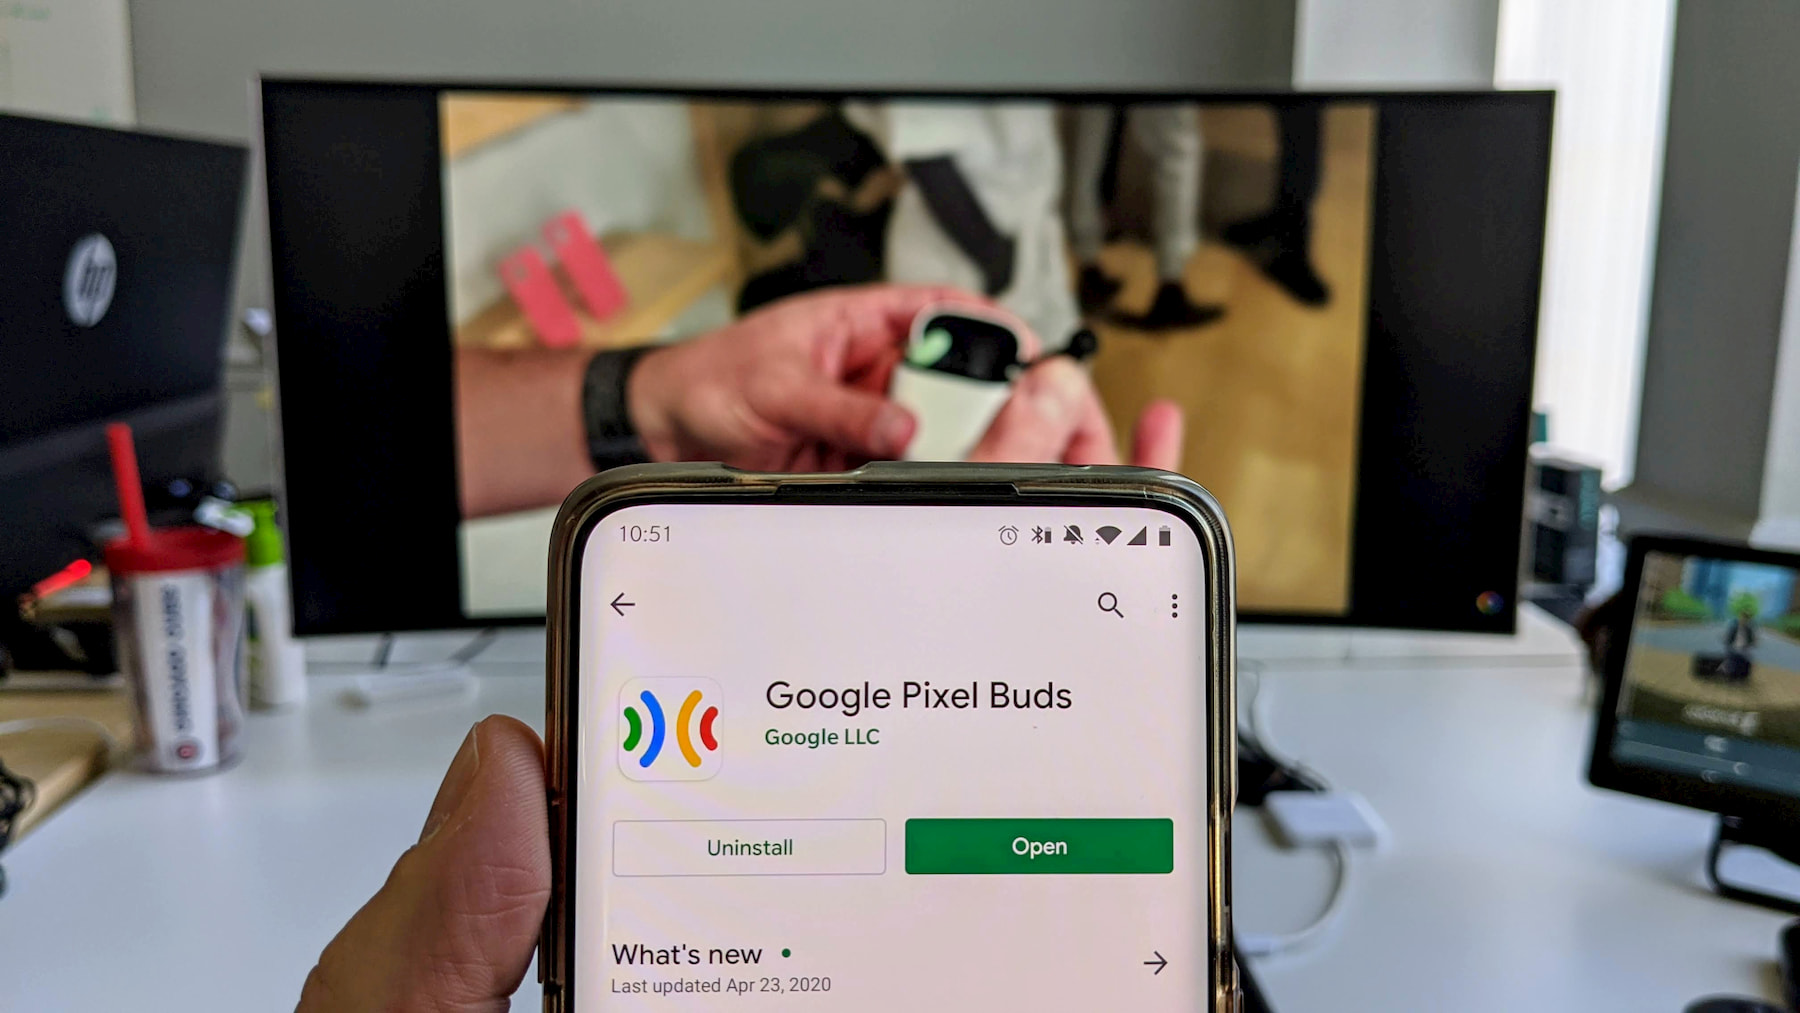 The full Pixel Buds 2 experience won't be limited to just Pixel users thanks to the Pixel Buds app